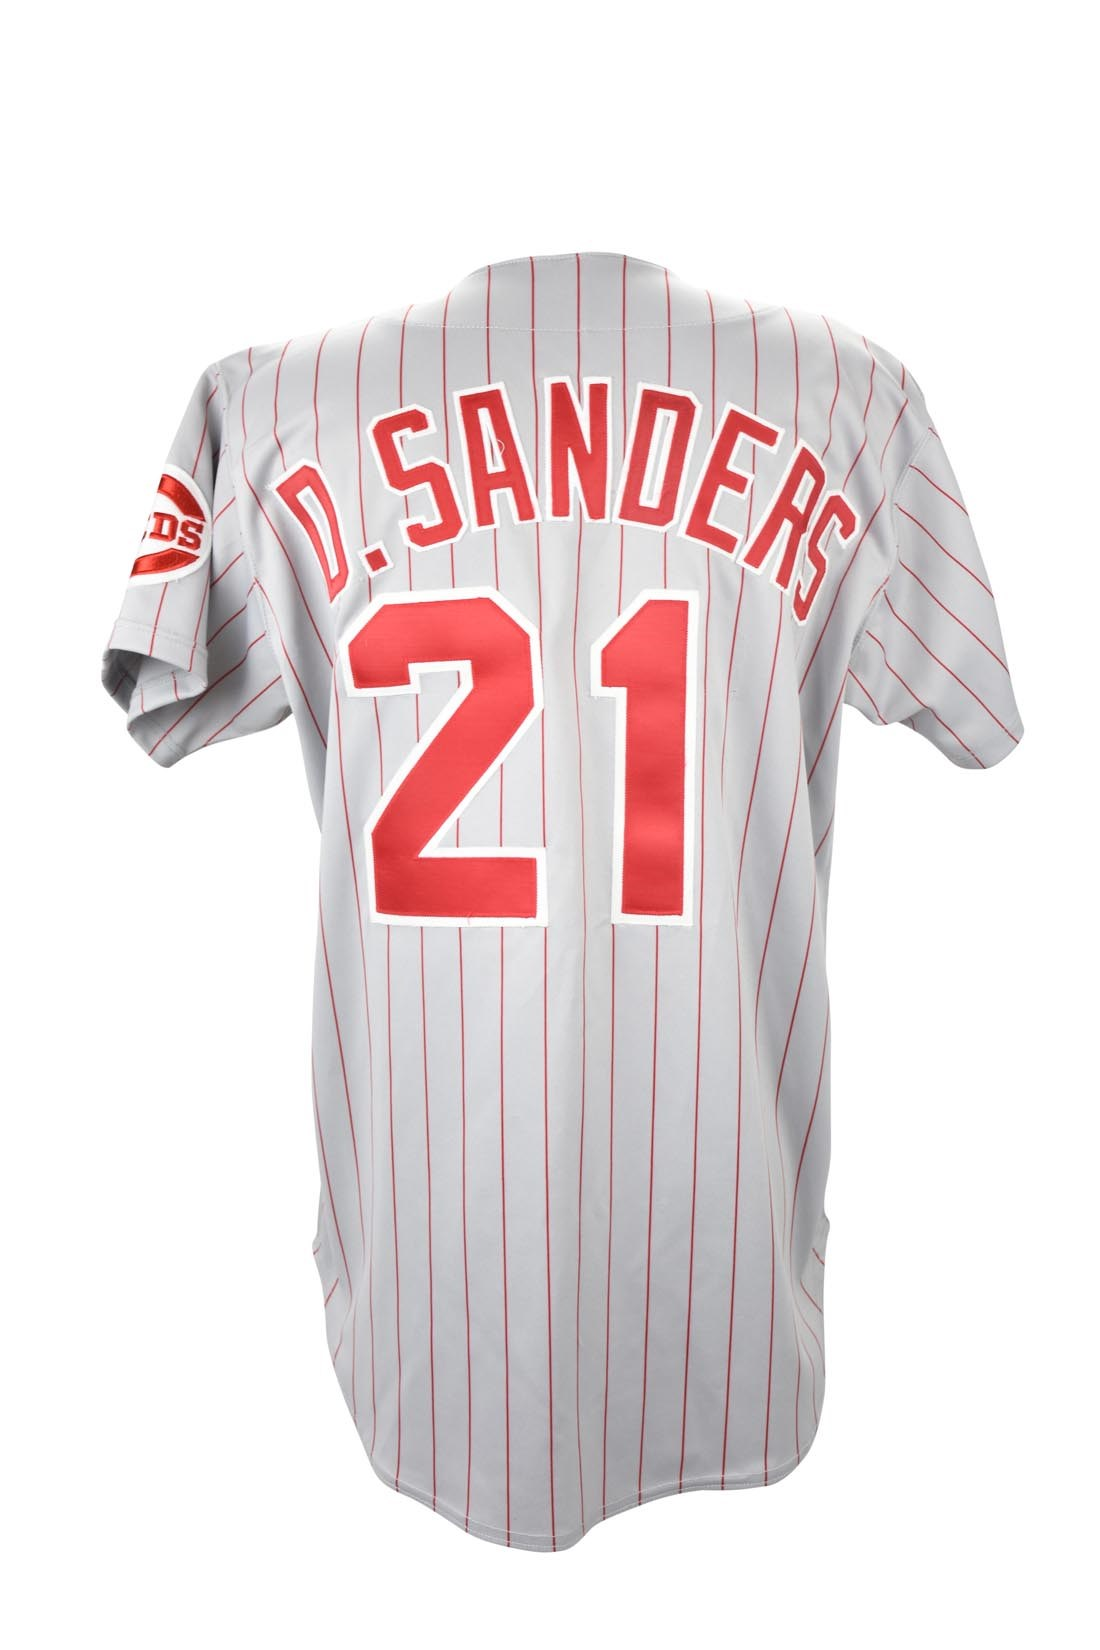 new style b09a9 c01a1 deion sanders reds jersey